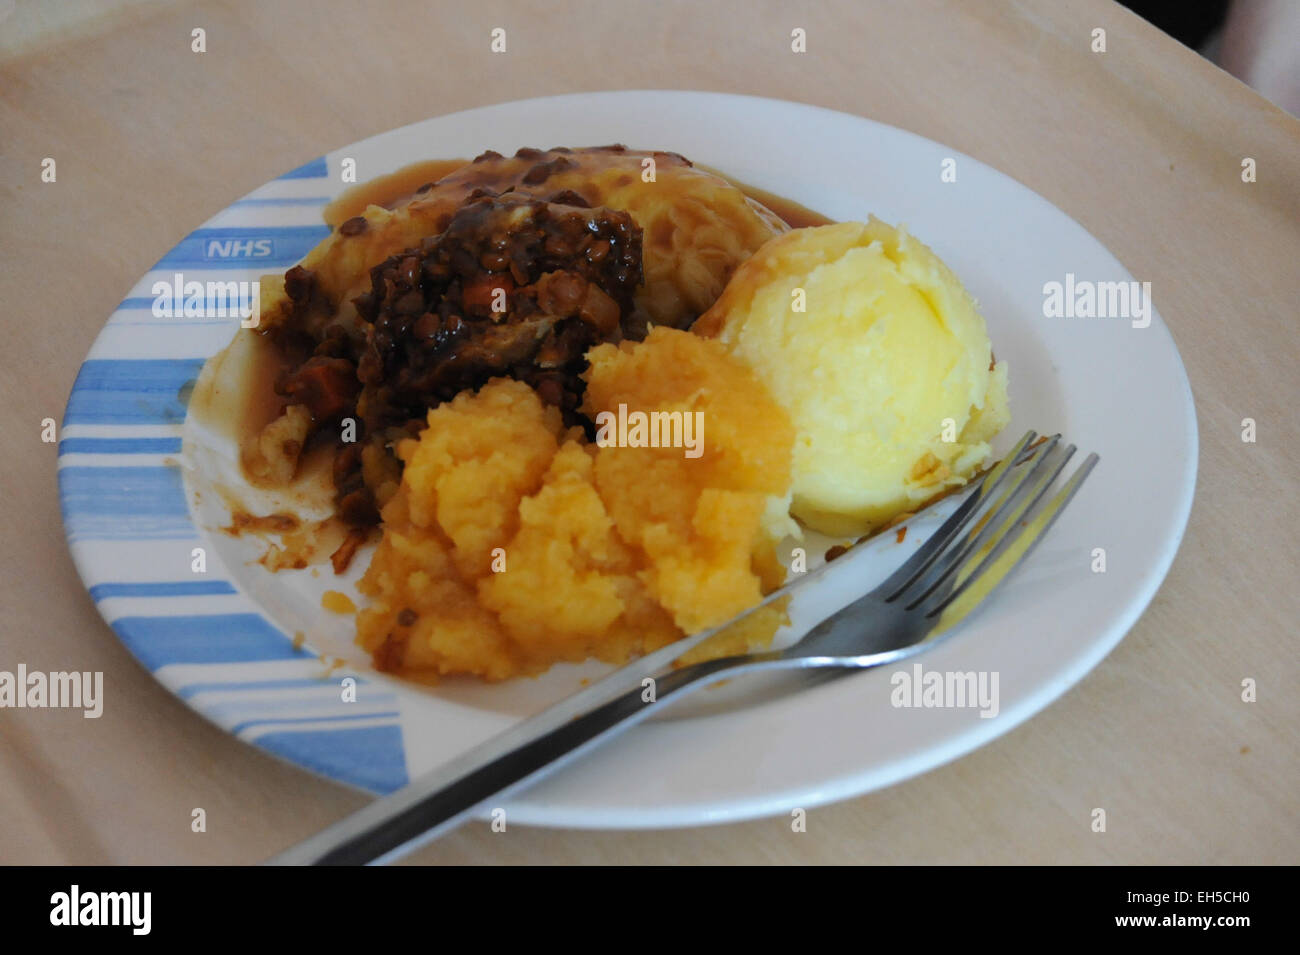 NHS hospital food - lentil casserole with mashed swede & mashed potato - Stock Image